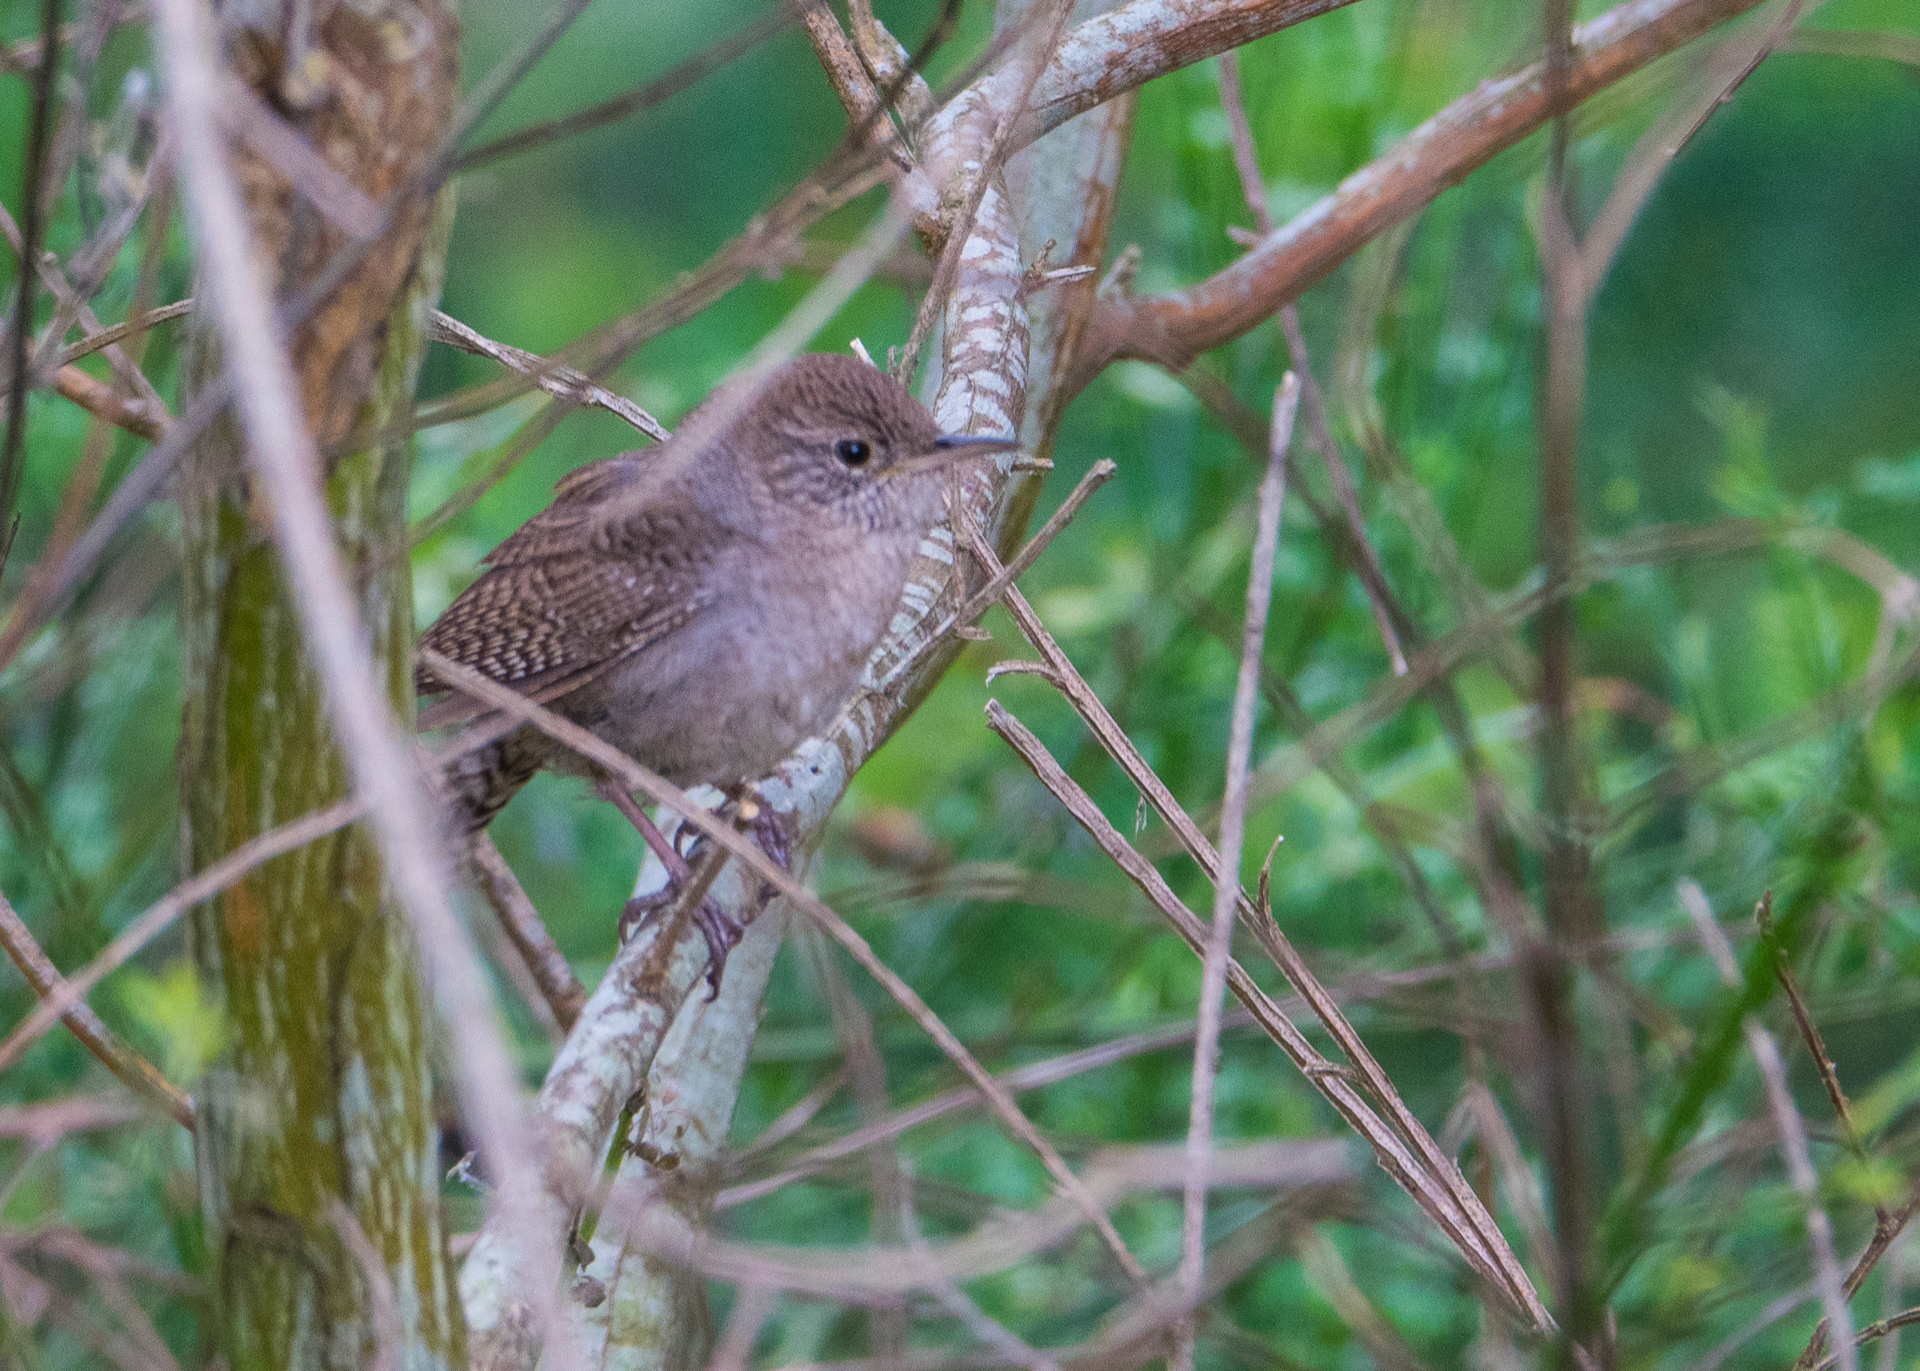 As we were leaving, a pacific wren started chirping - so much noise from such a small bird!